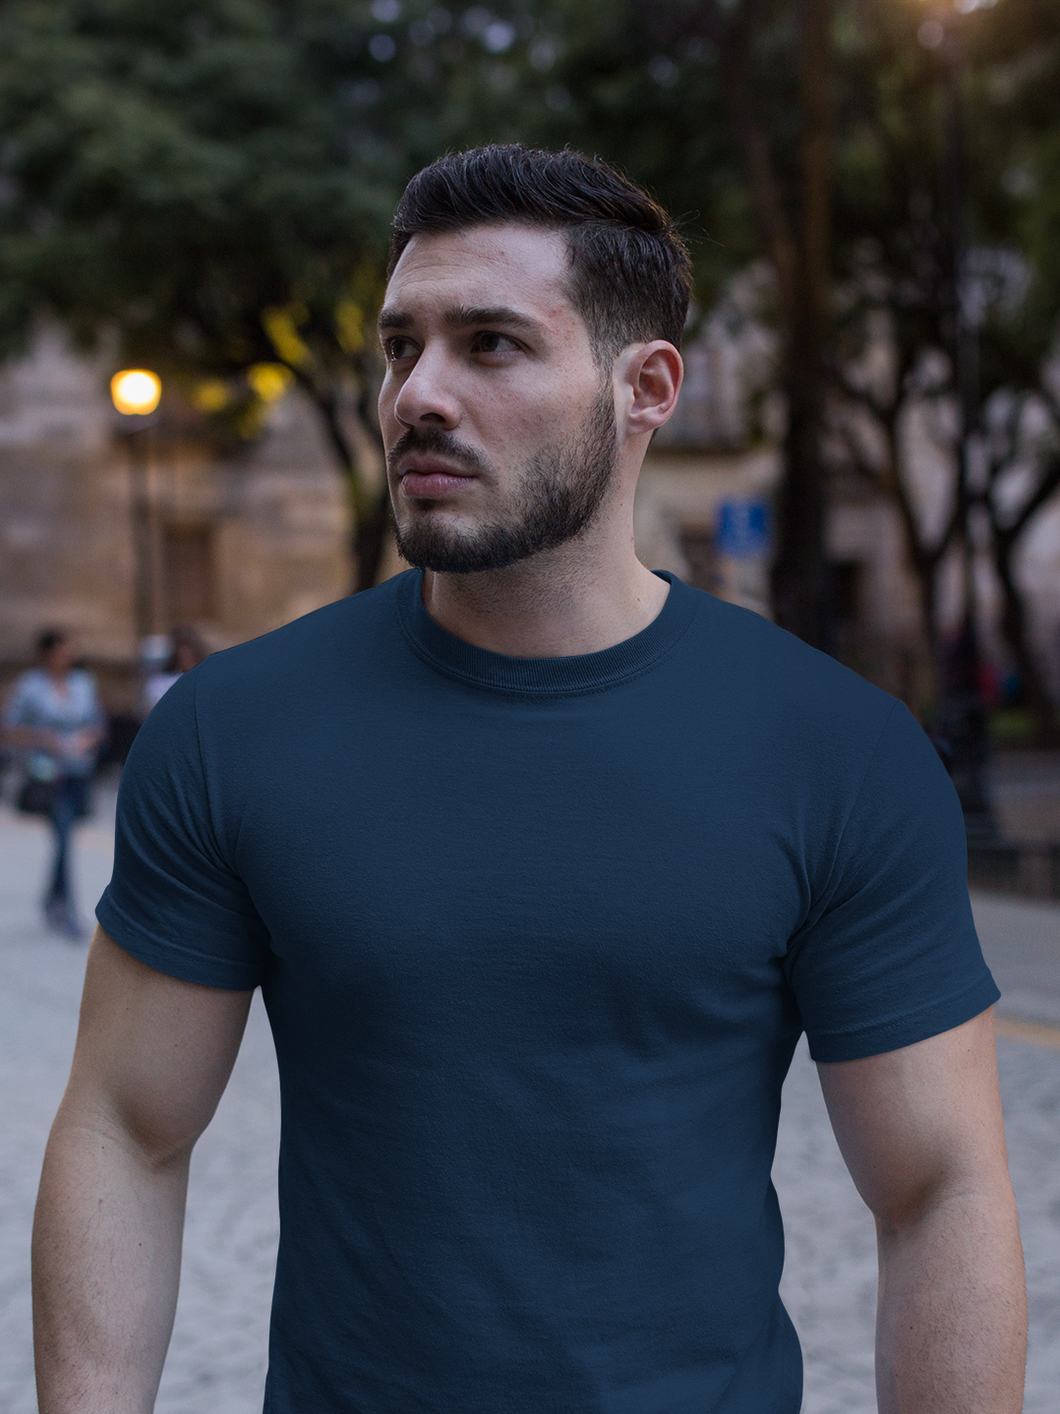 Plain - Men's Half Sleeve T-Shirt - Navy Blue